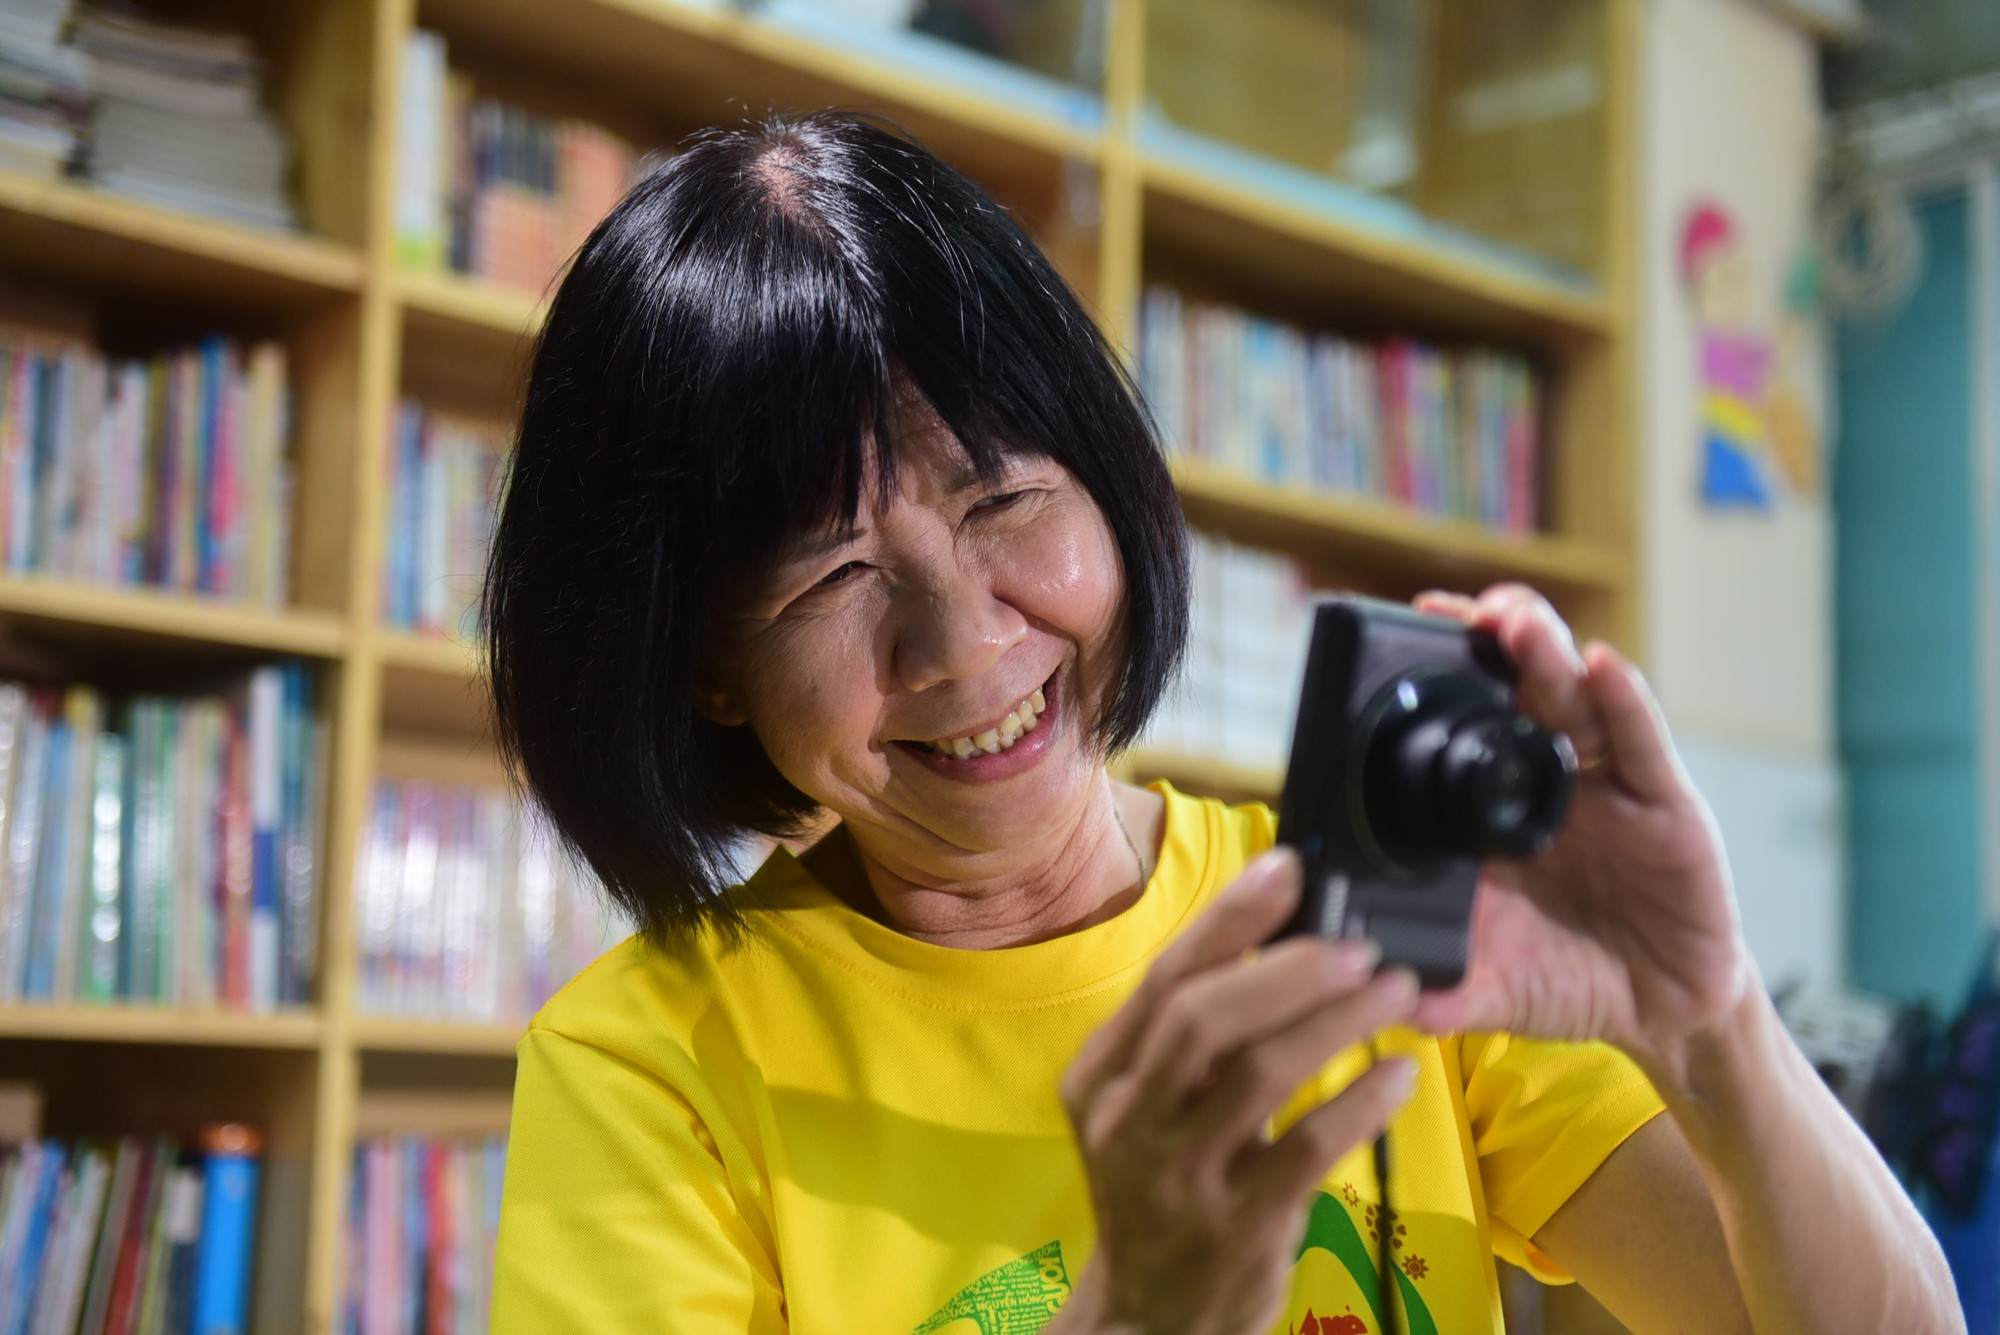 Dinh Thi Kim Phan takes pictures in a classroom at the Ho Chi Minh City Oncology Hospital in Ho Chi Minh City, Vietnam. Photo: Tuoi Tre